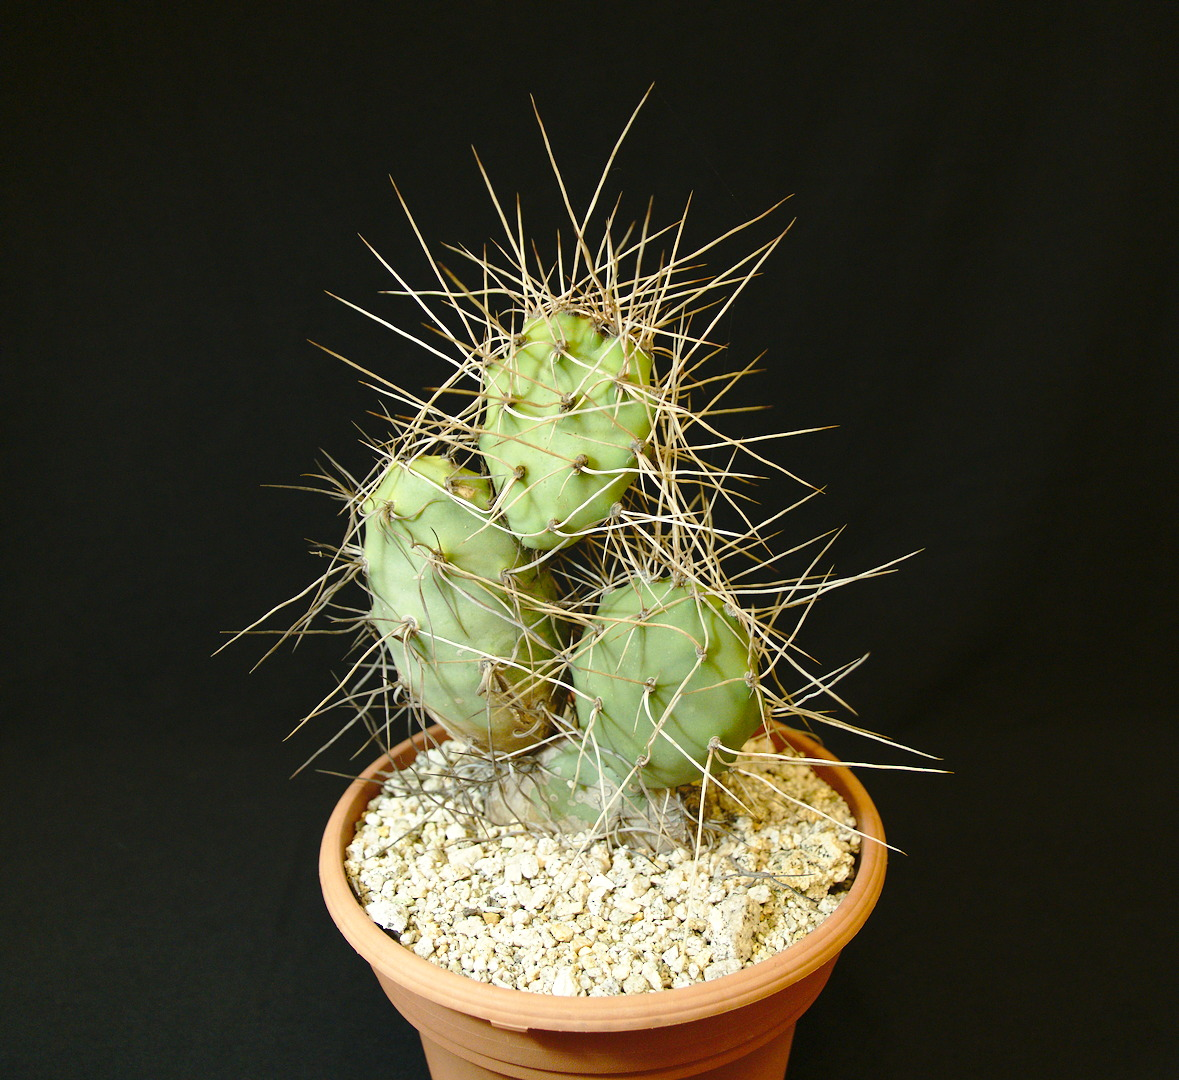 SCCSS 2017 June - Winner Novice Cactus - Bernard Johnson - Opuntia sulphurea